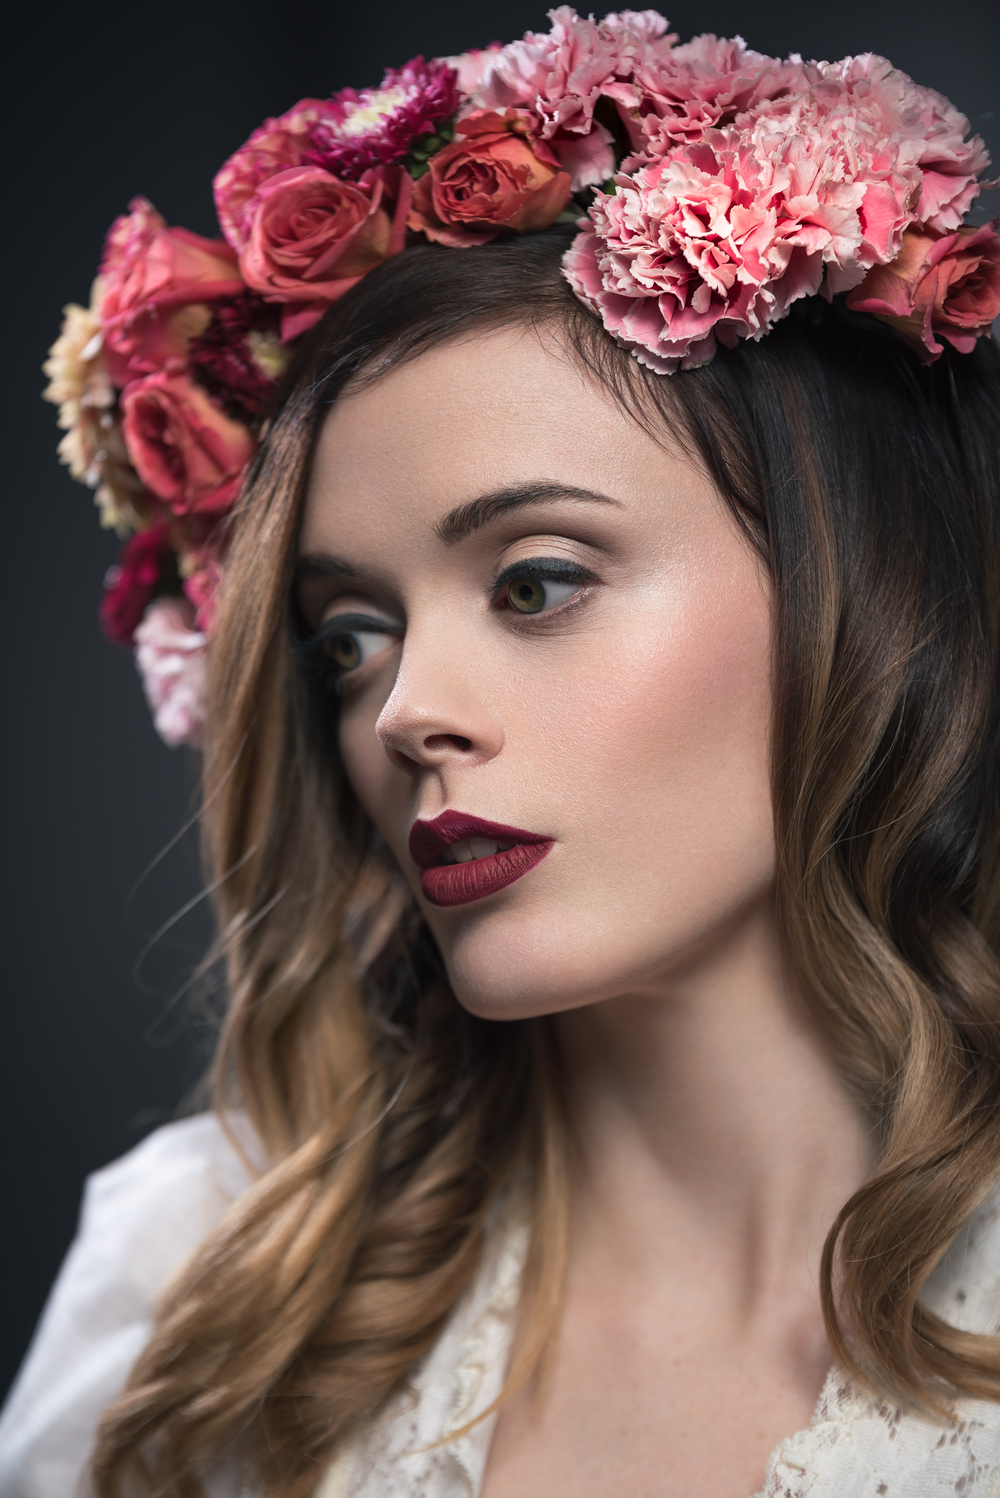 Photo:  Chris Langford  | Hair+Makeup: Rachel Lane | Model:  L  auren Bartlett  | Florals:  Taffy Floral  | Dress:  Gypsy De La Lune